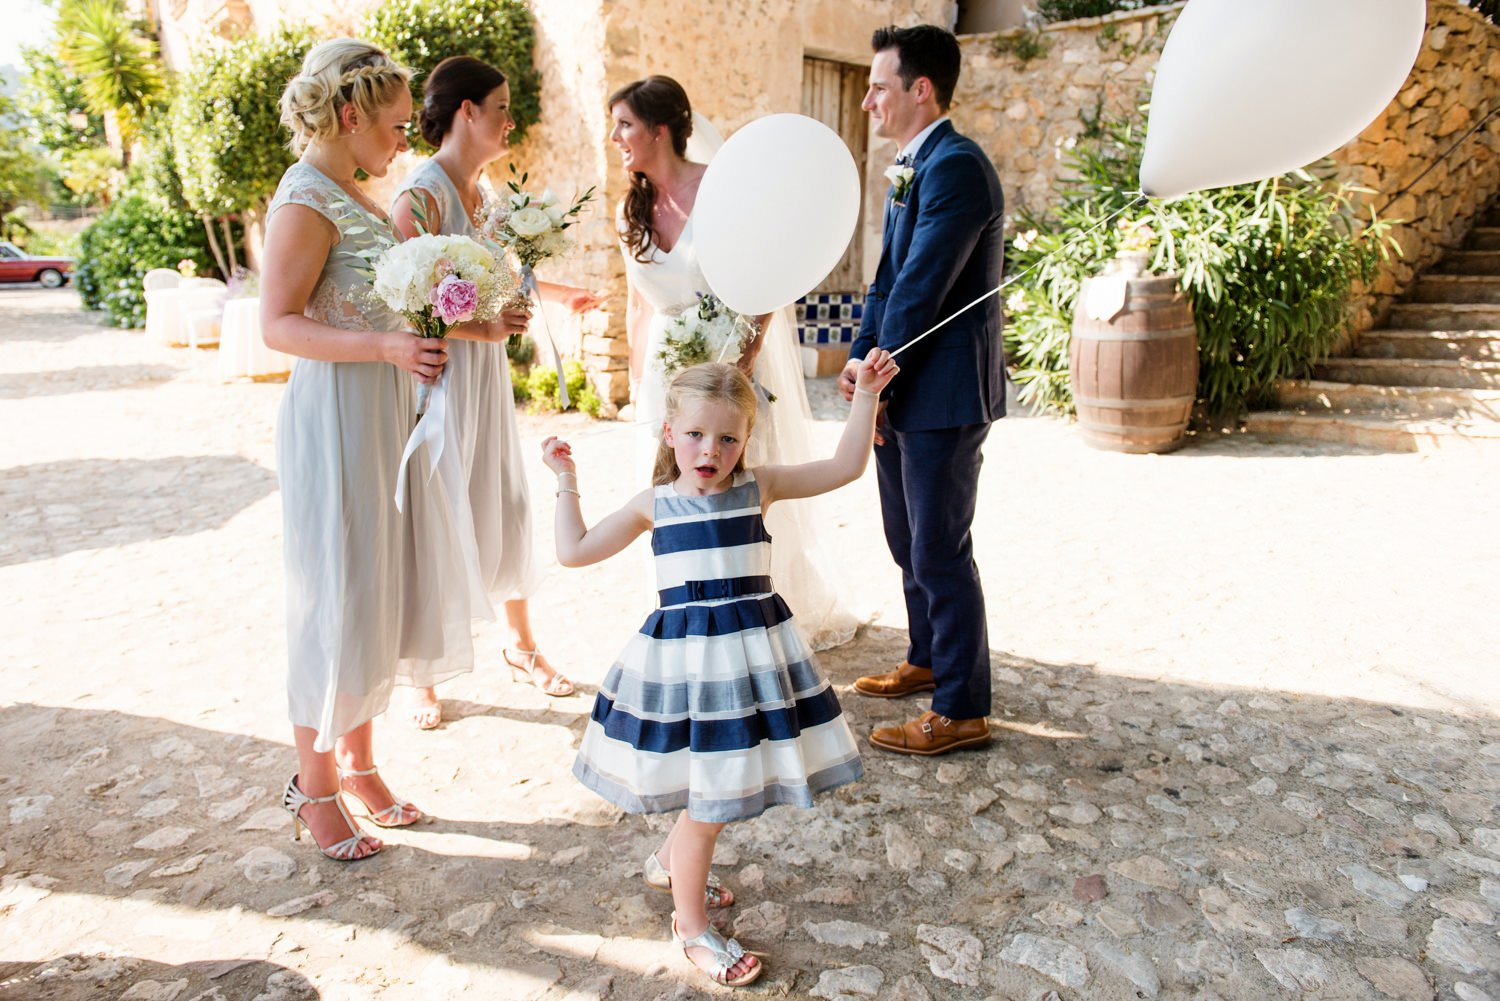 Creative storytelling wedding photography Mallorca